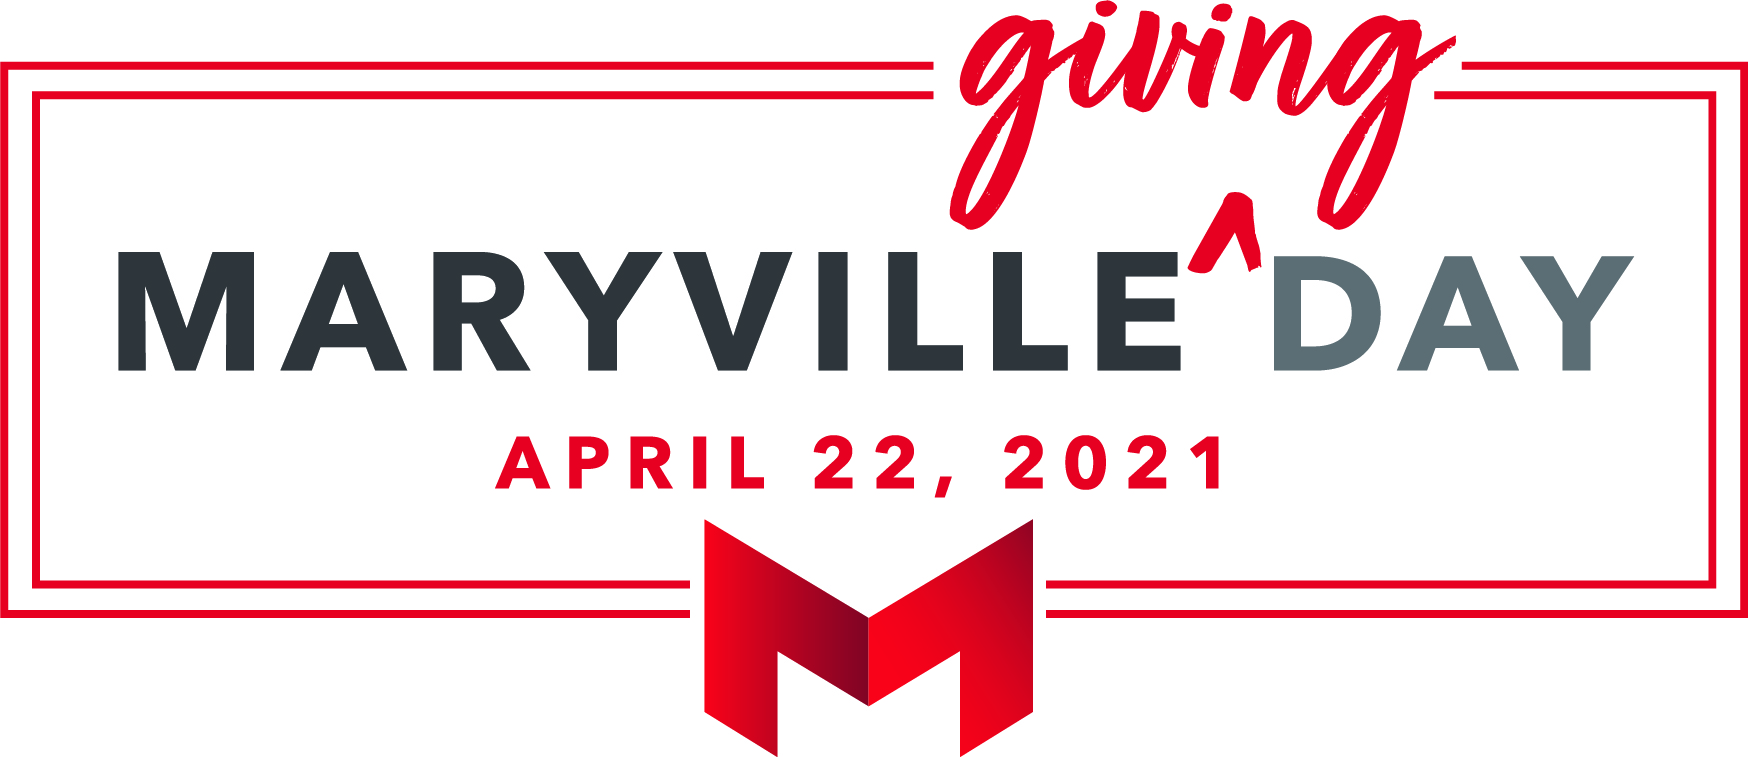 maryville giving day logo